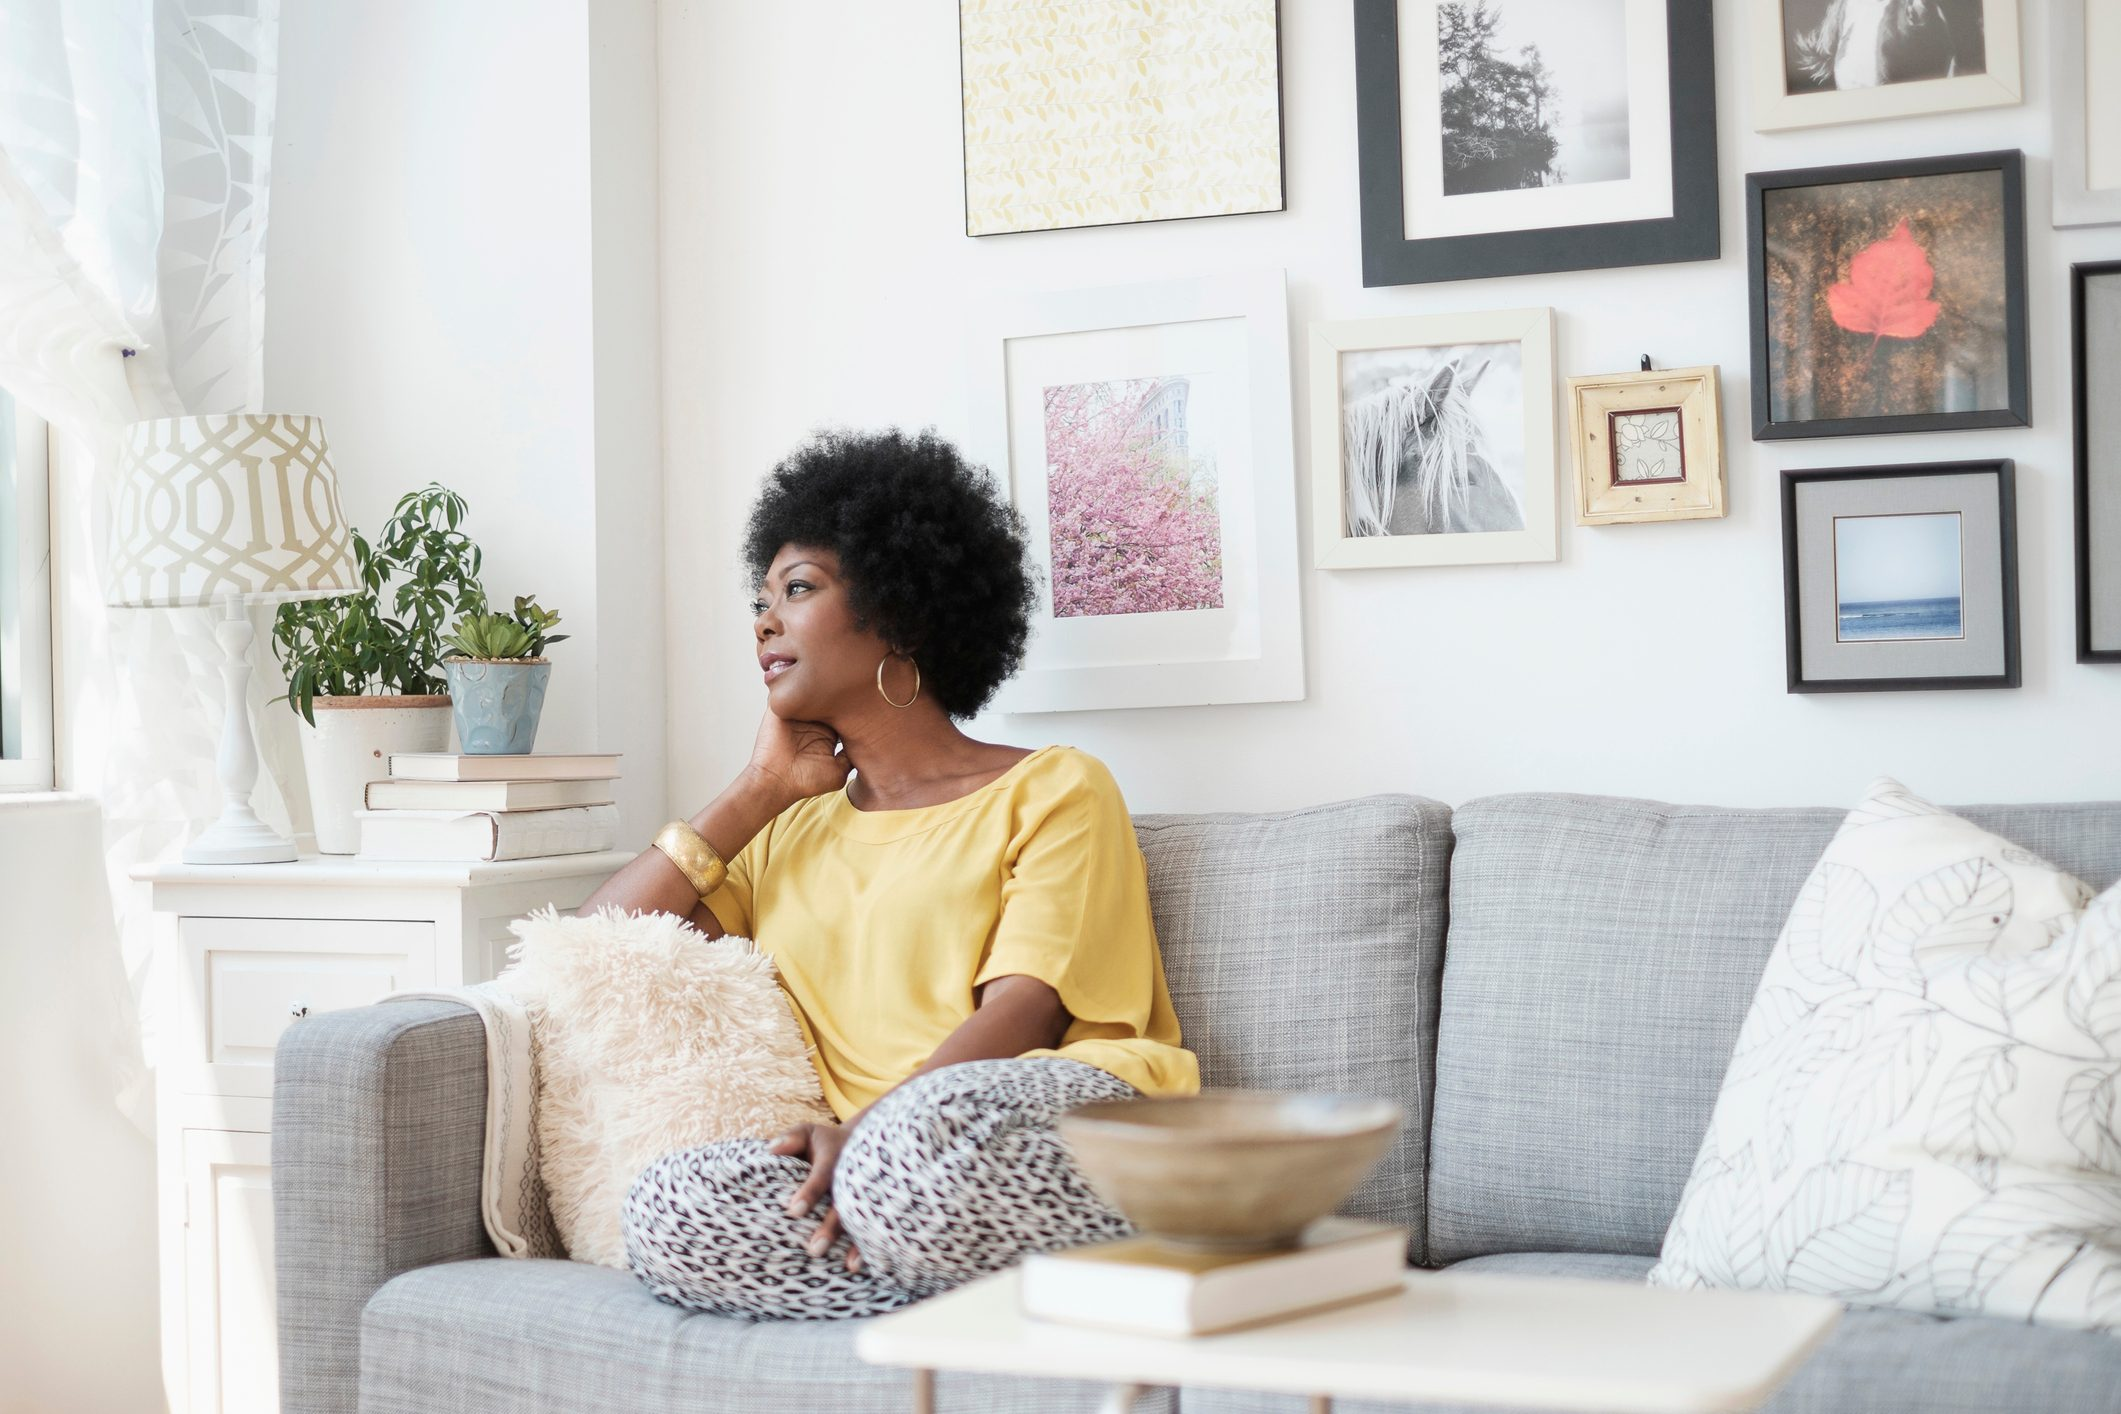 woman sitting at home and relaxing on couch